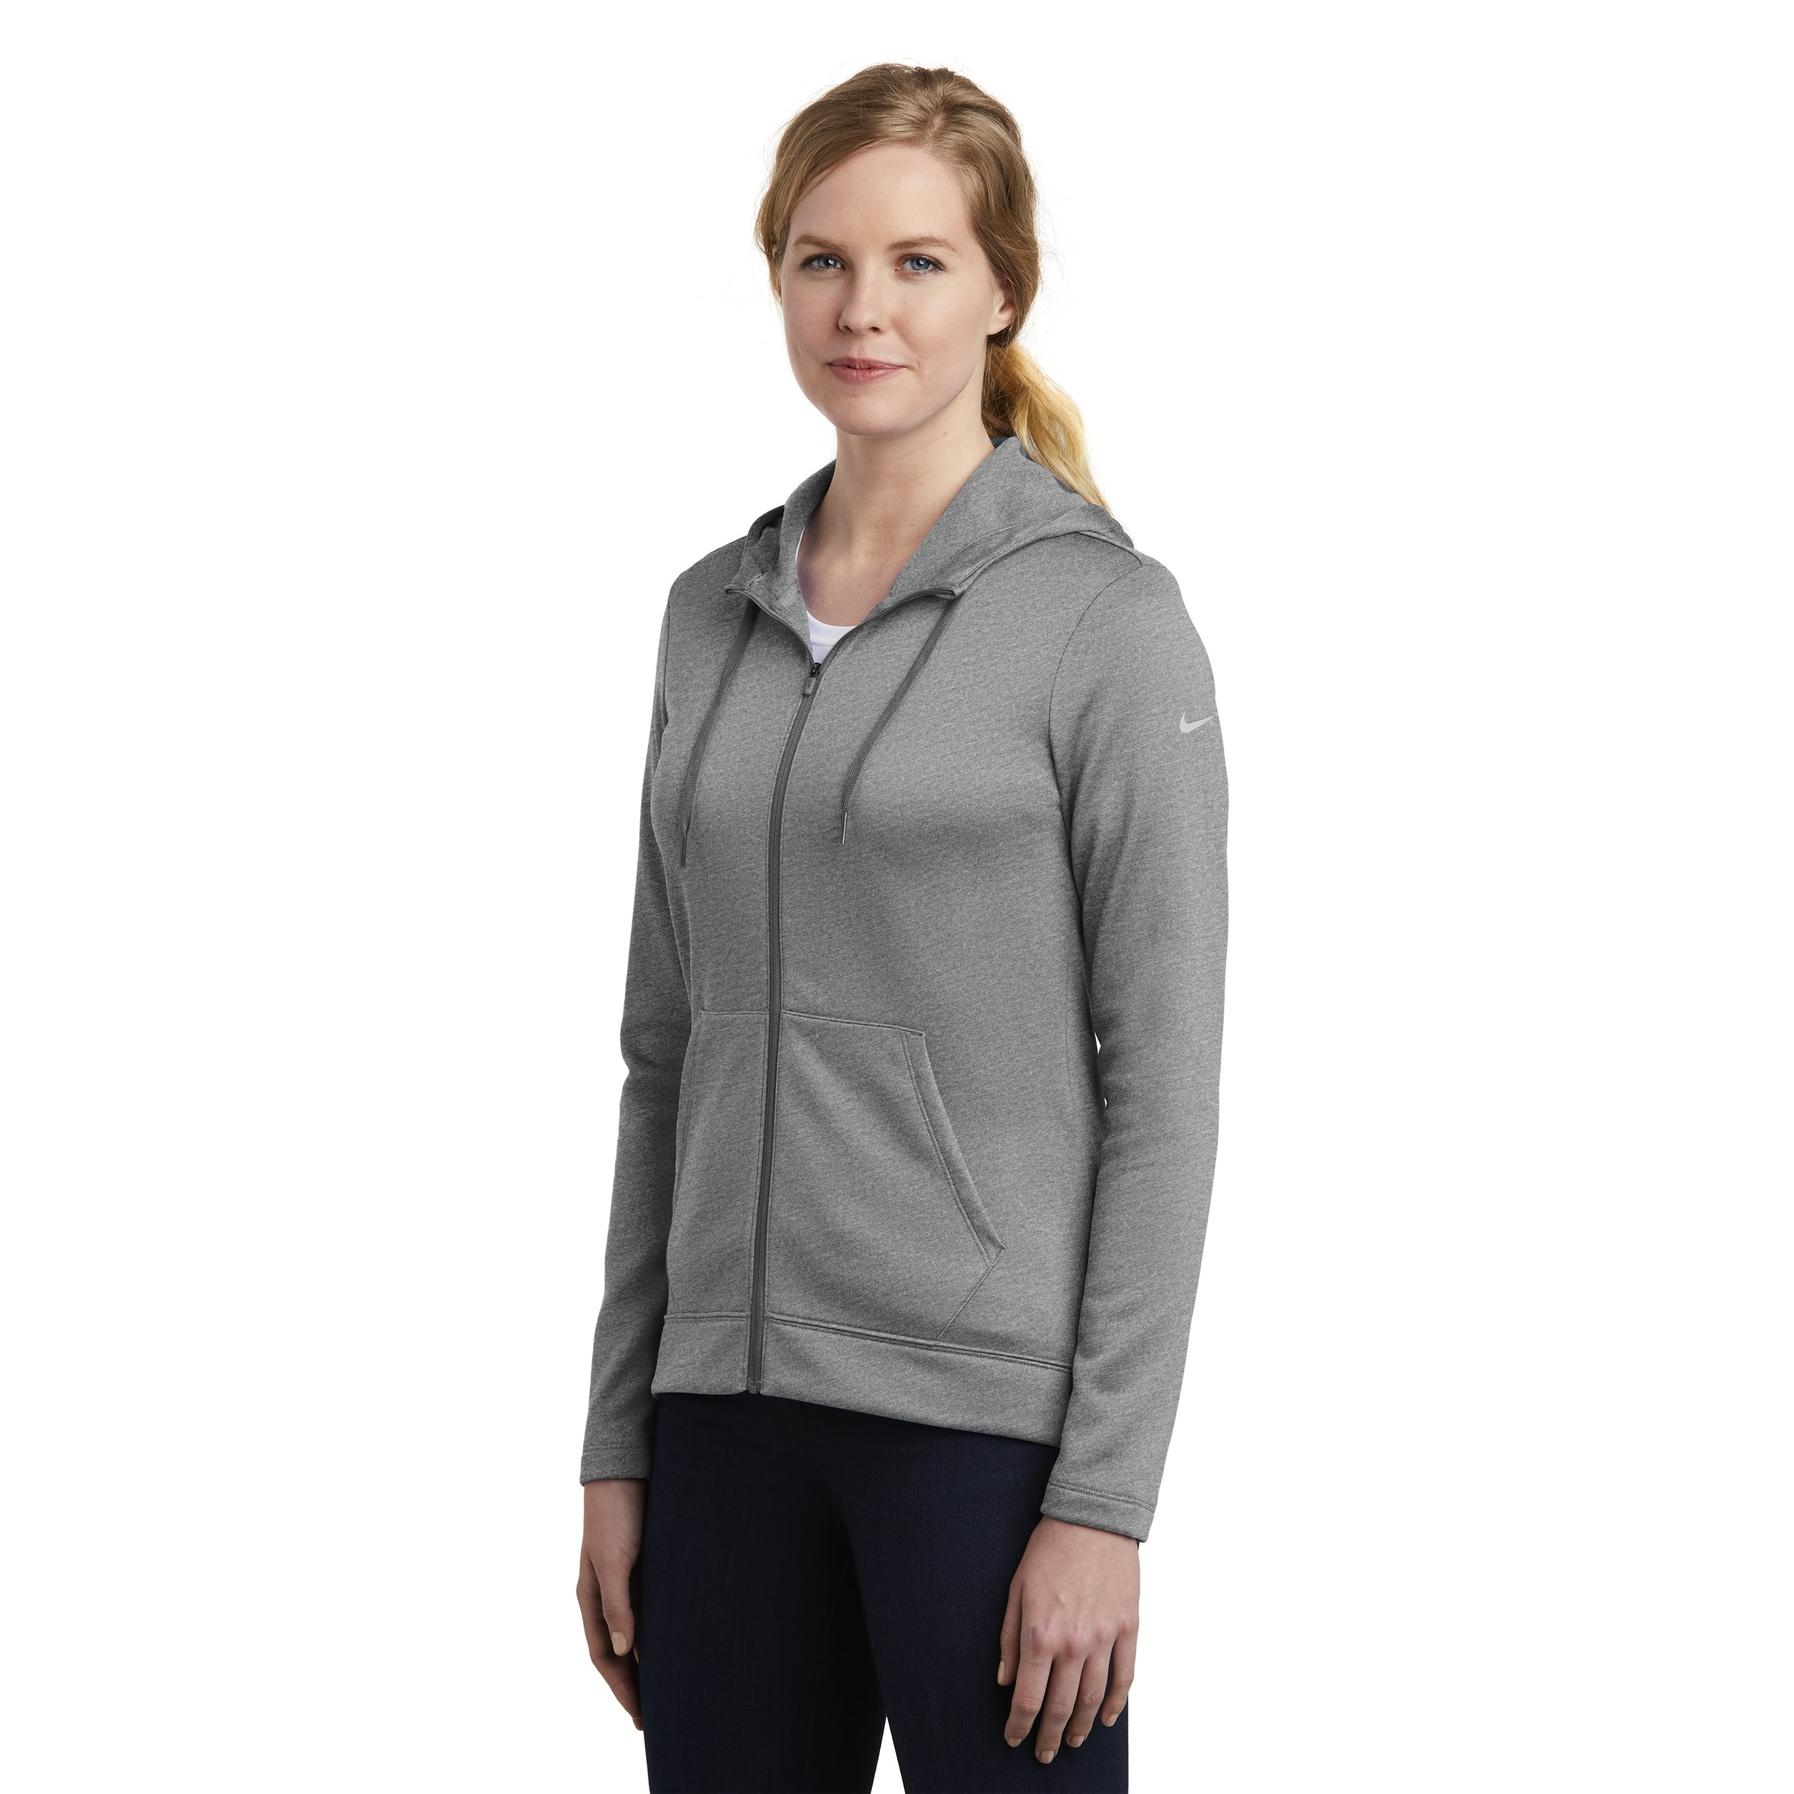 f7df75ec3c8f Nike NKAH6264 Ladies Therma-FIT Full-Zip Fleece Hoodie - Dark Grey ...